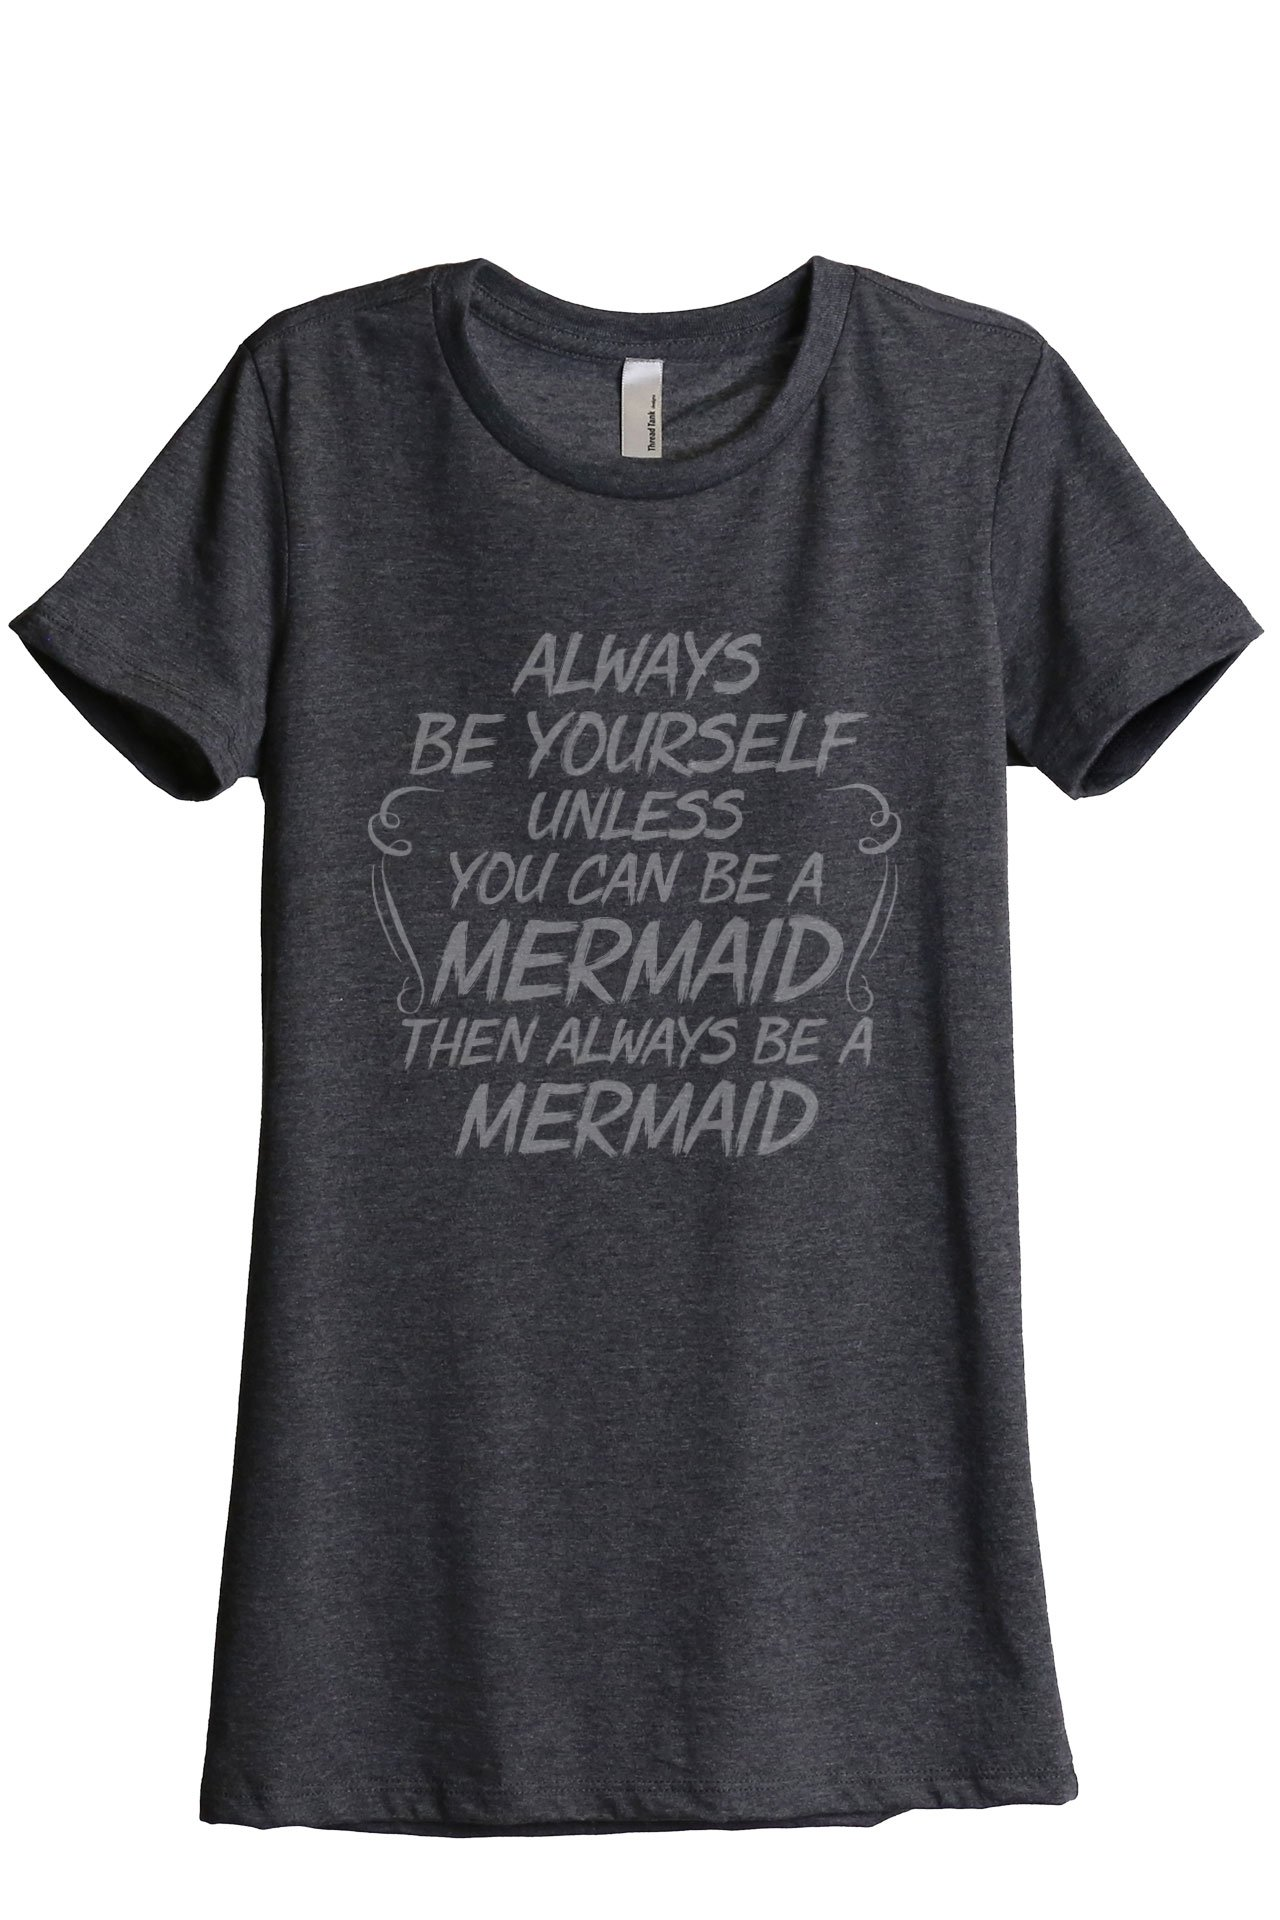 Always Be Yourself Mermaid Women's Fashion Relaxed T-Shirt Tee Charcoal Grey